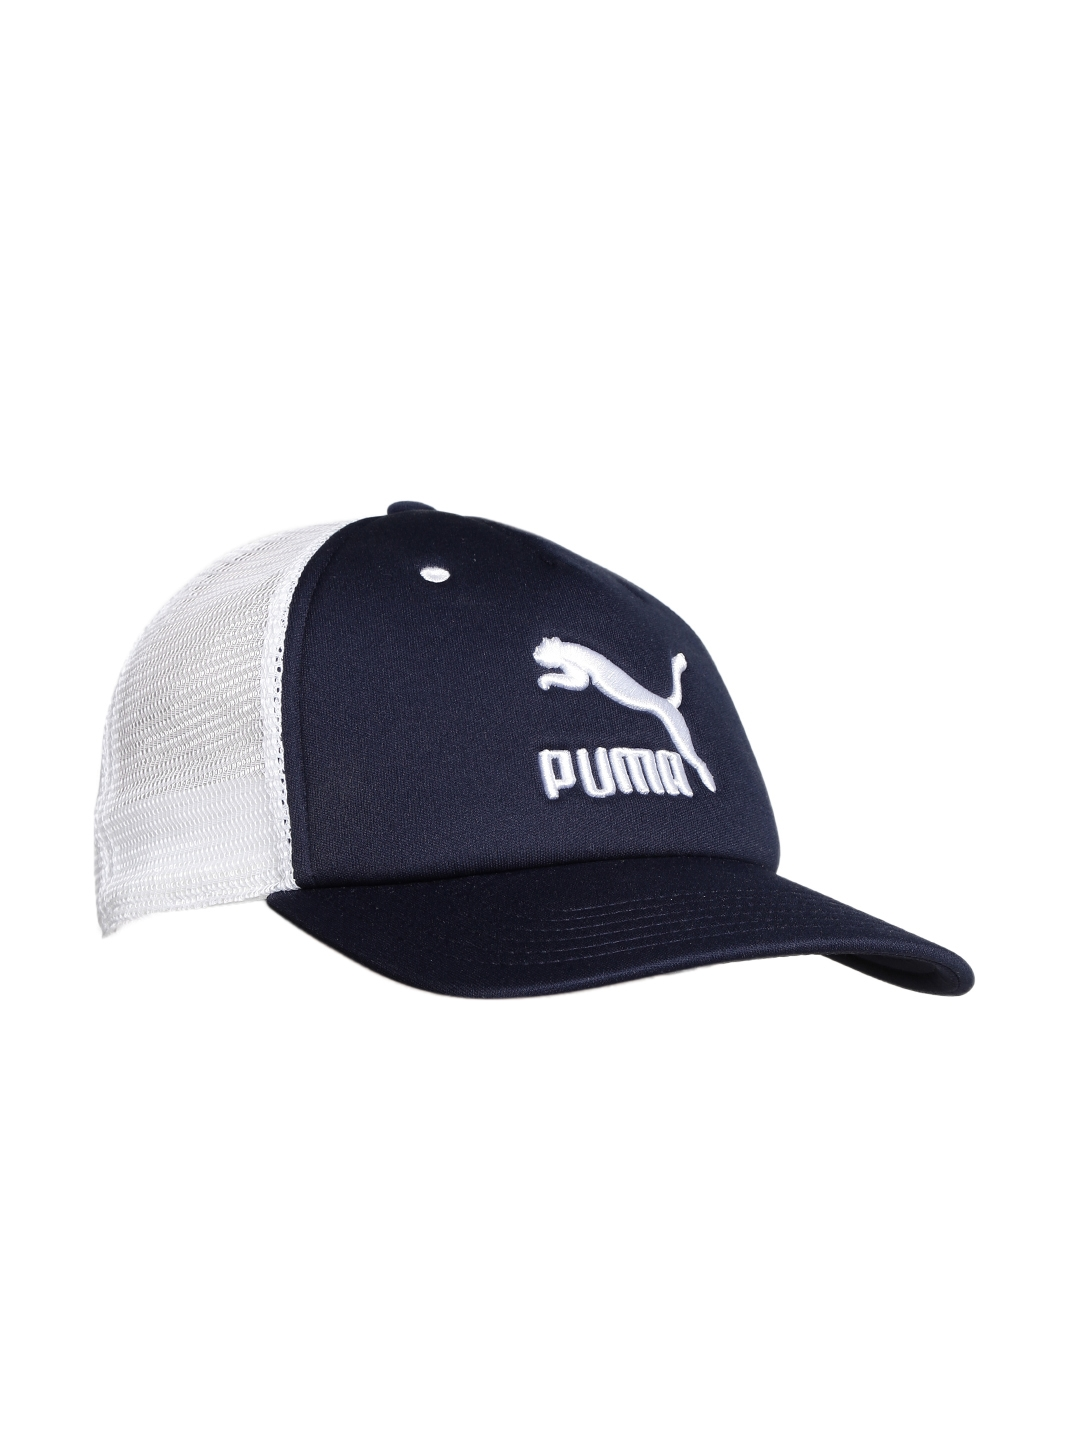 cd541340b7b Buy Puma Unisex White   Navy ARCHIVE Trucker Cap - Caps for Unisex ...